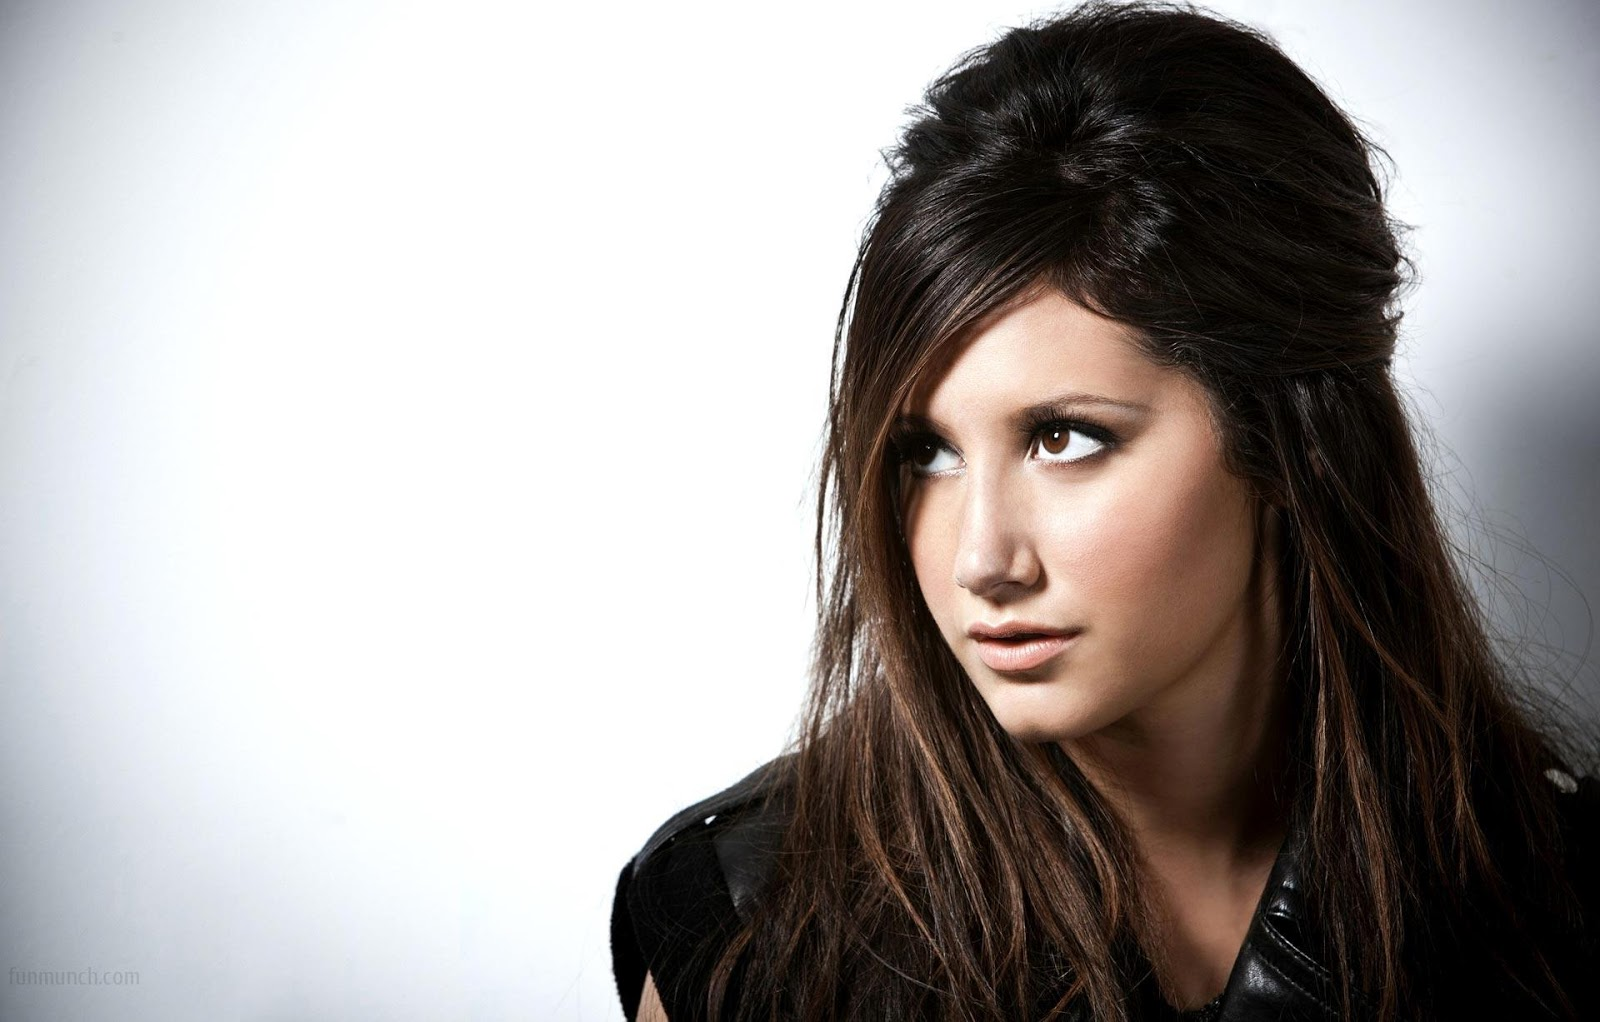 Ashley Tisdale simple images showing her sexyness